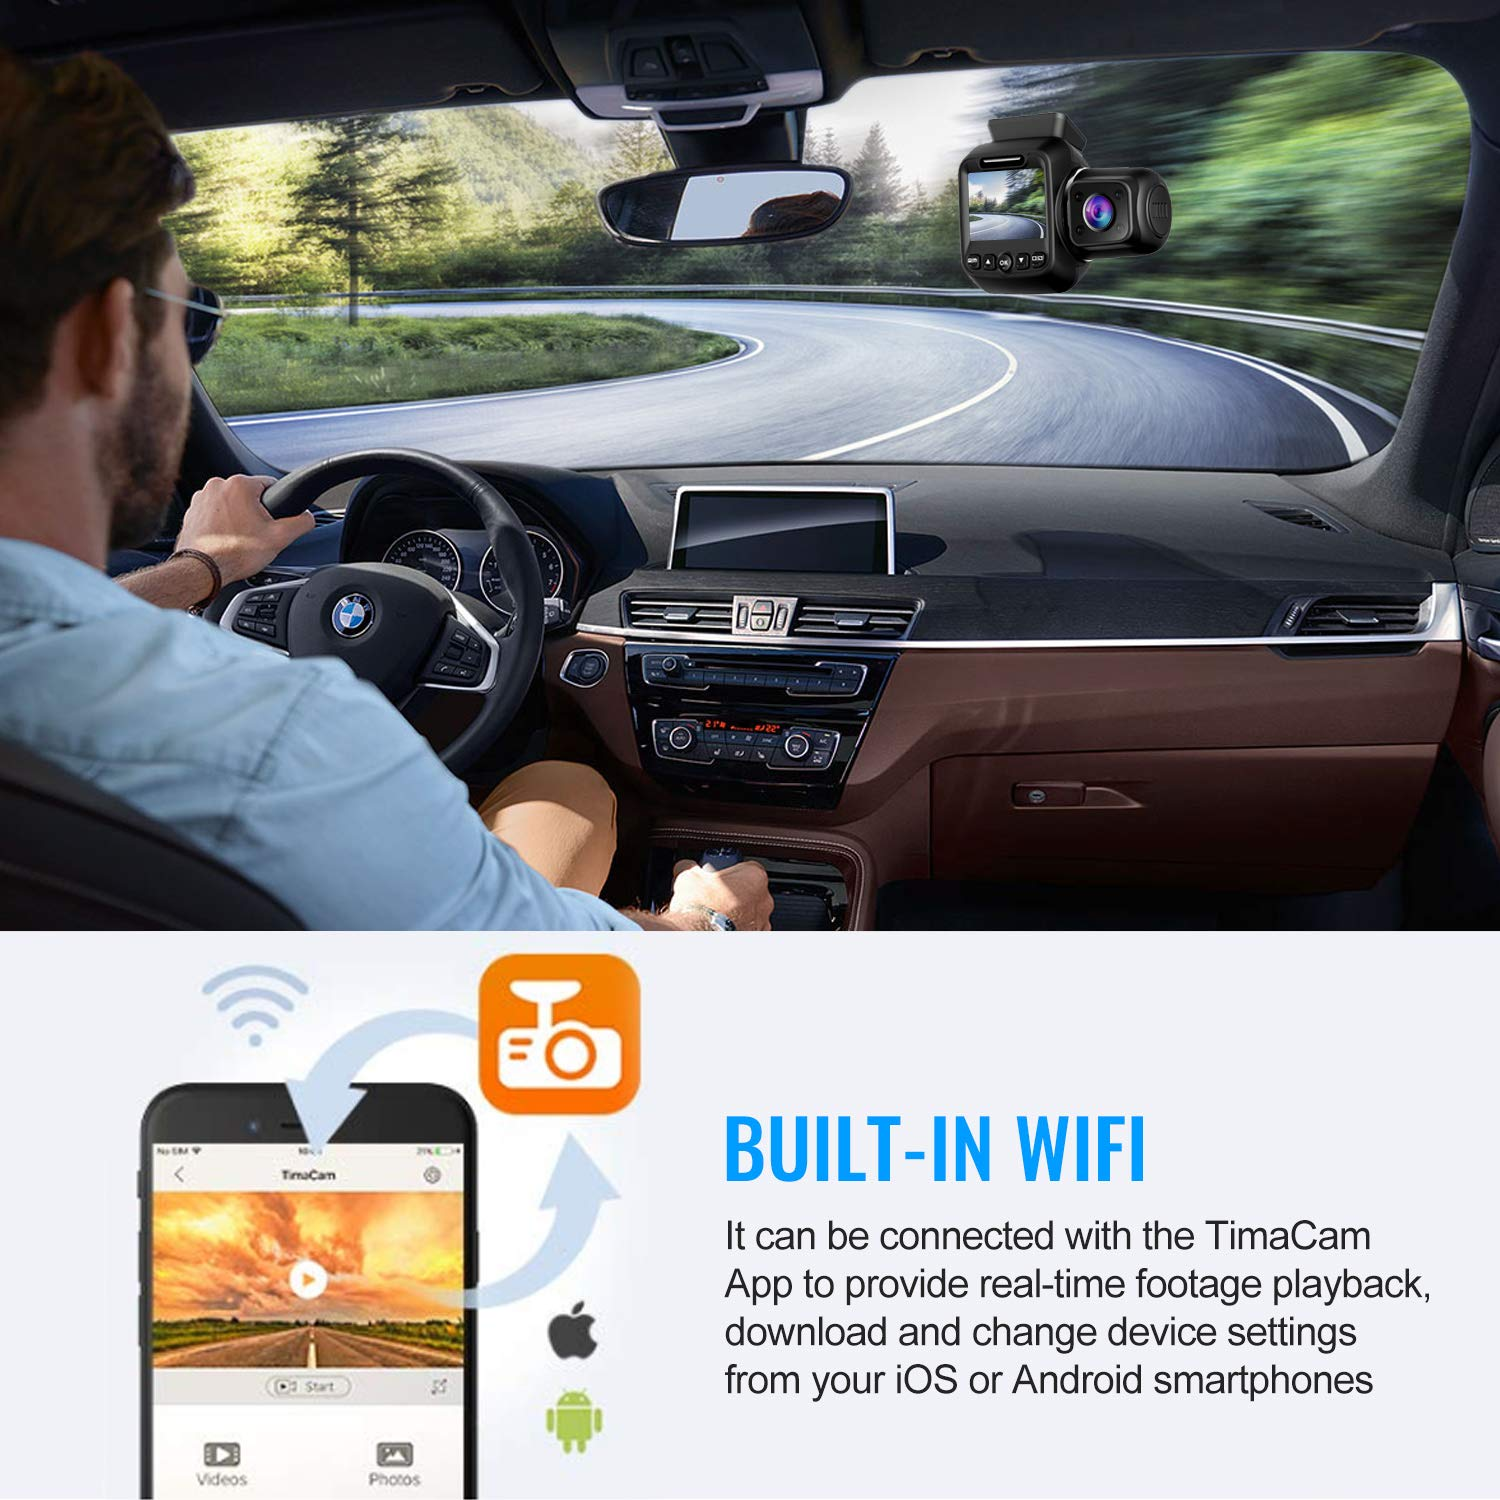 Upgraded Pruveeo P3 Dash Cam with Infrared Night Vision, Built-in GPS, WiFi, Dual 1080P Front and Inside, Dash Camera for Cars Uber Lyft Truck Taxi by Pruveeo (Image #5)